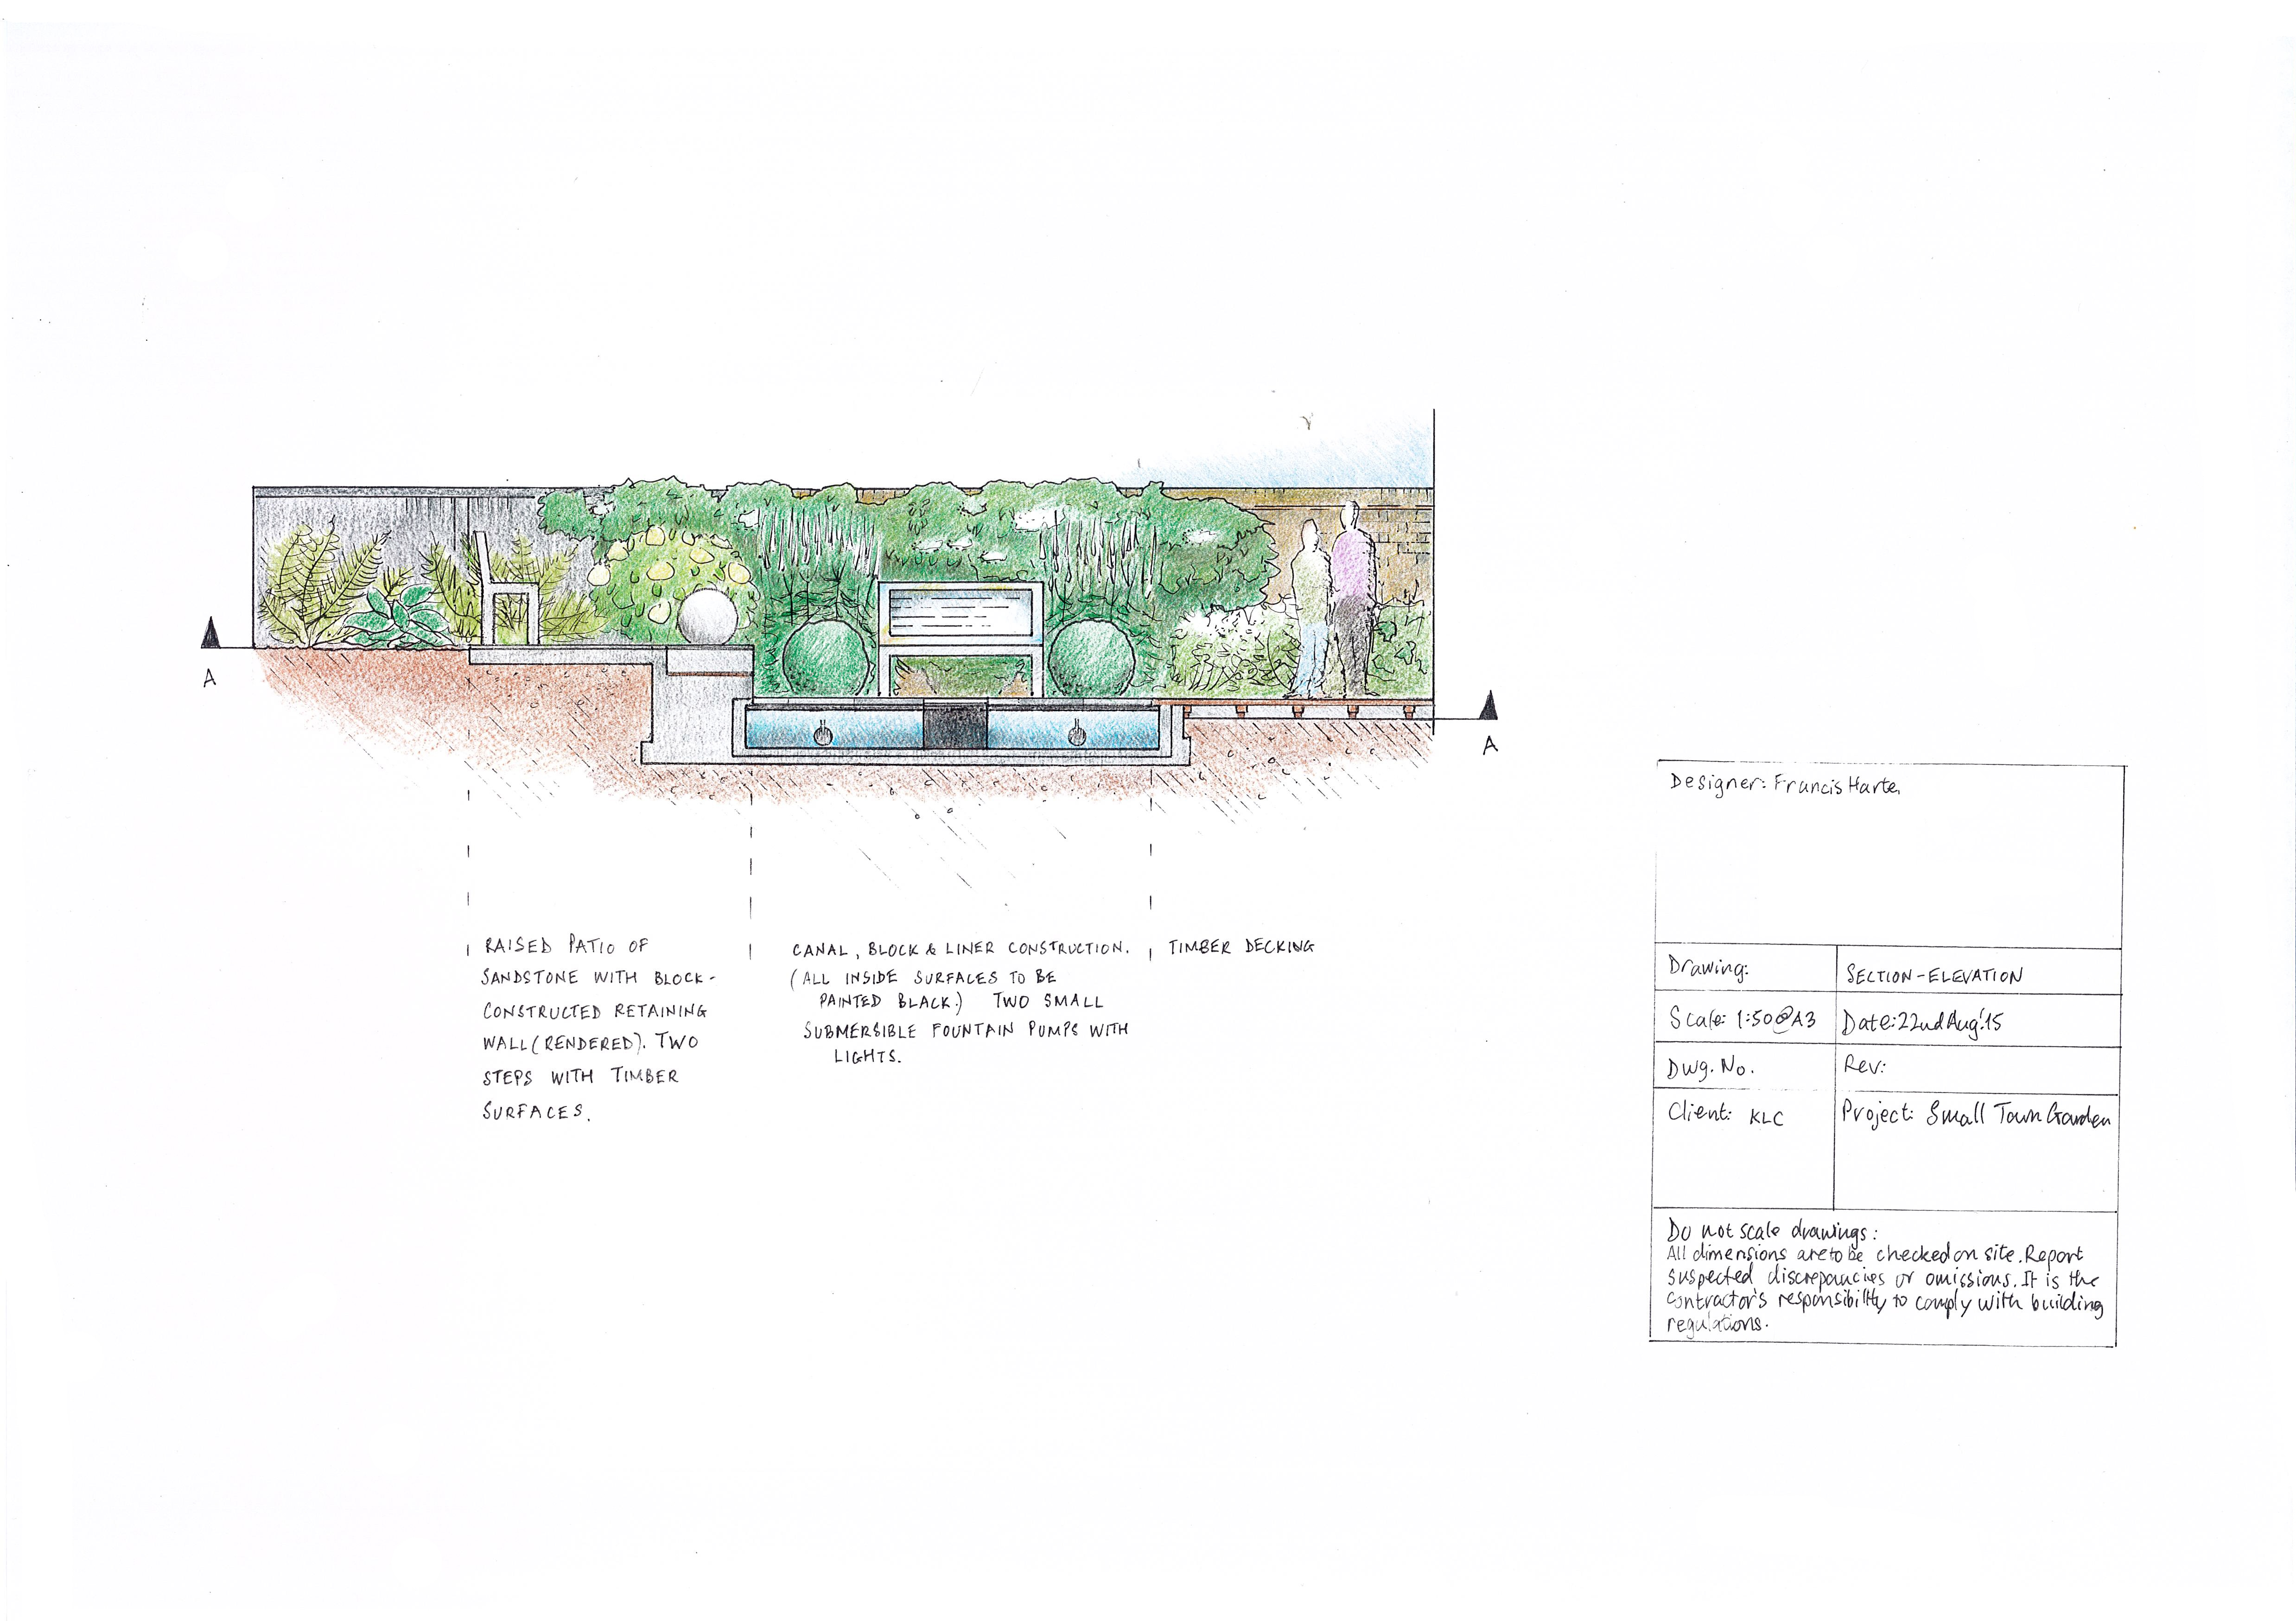 3.2 Small Town Garden Section-Elevation by Francis Harte